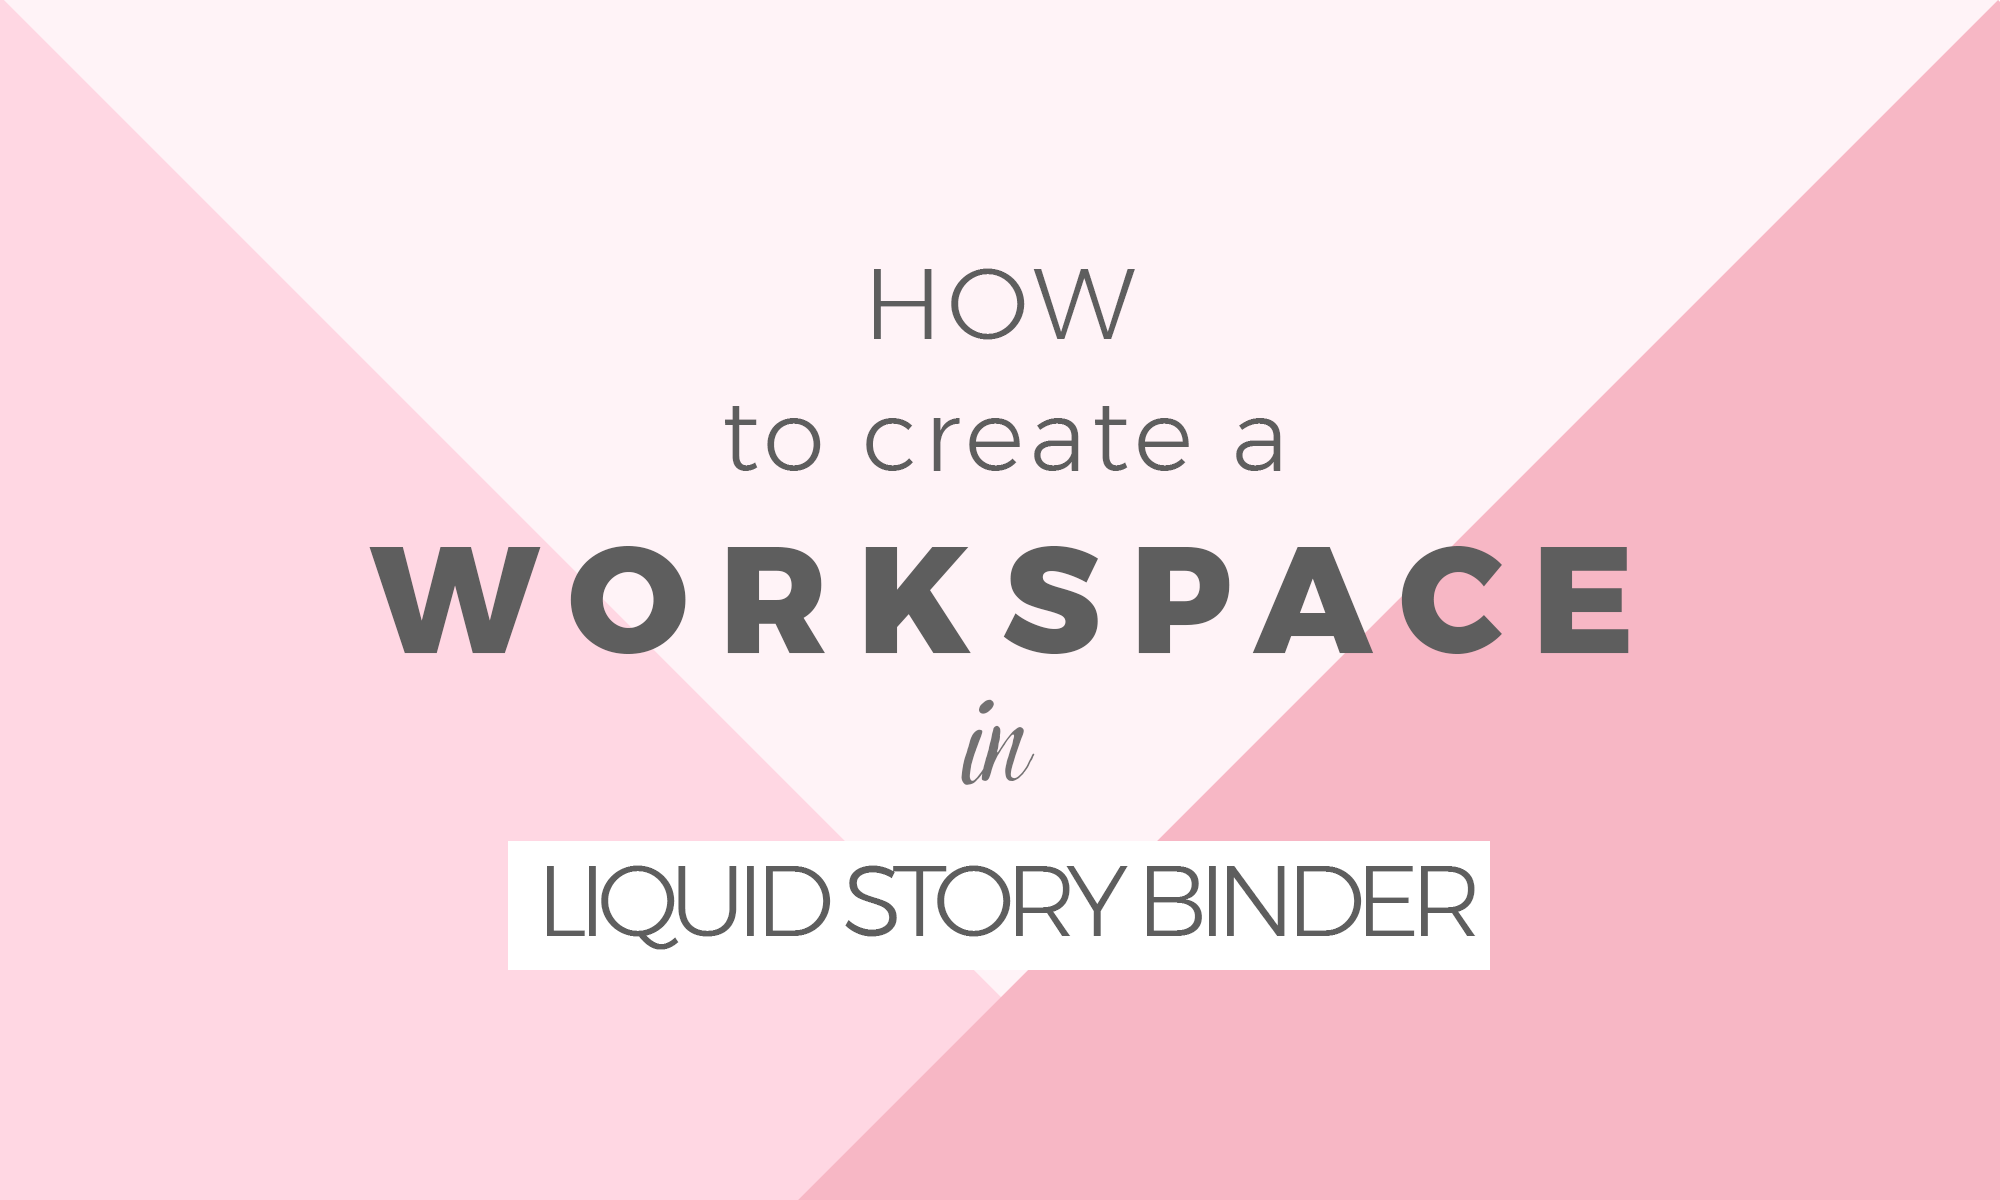 How to create a workspace in Liquid Story Binder